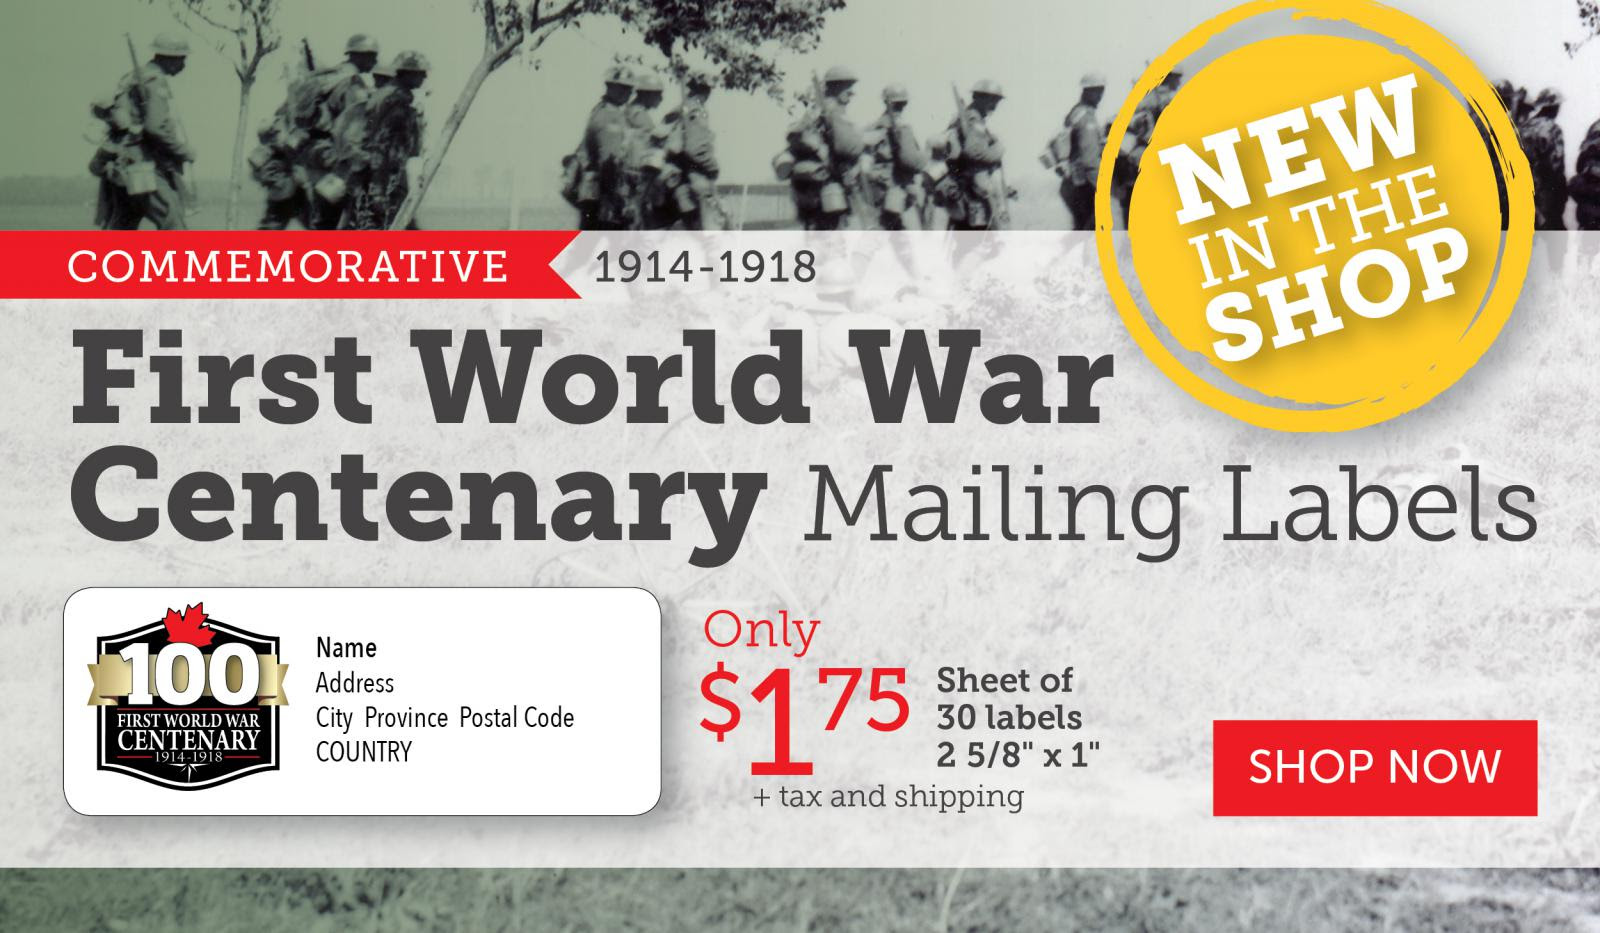 World War I Centenary Mailing Labels for $1.75 | NEW IN SHOP!